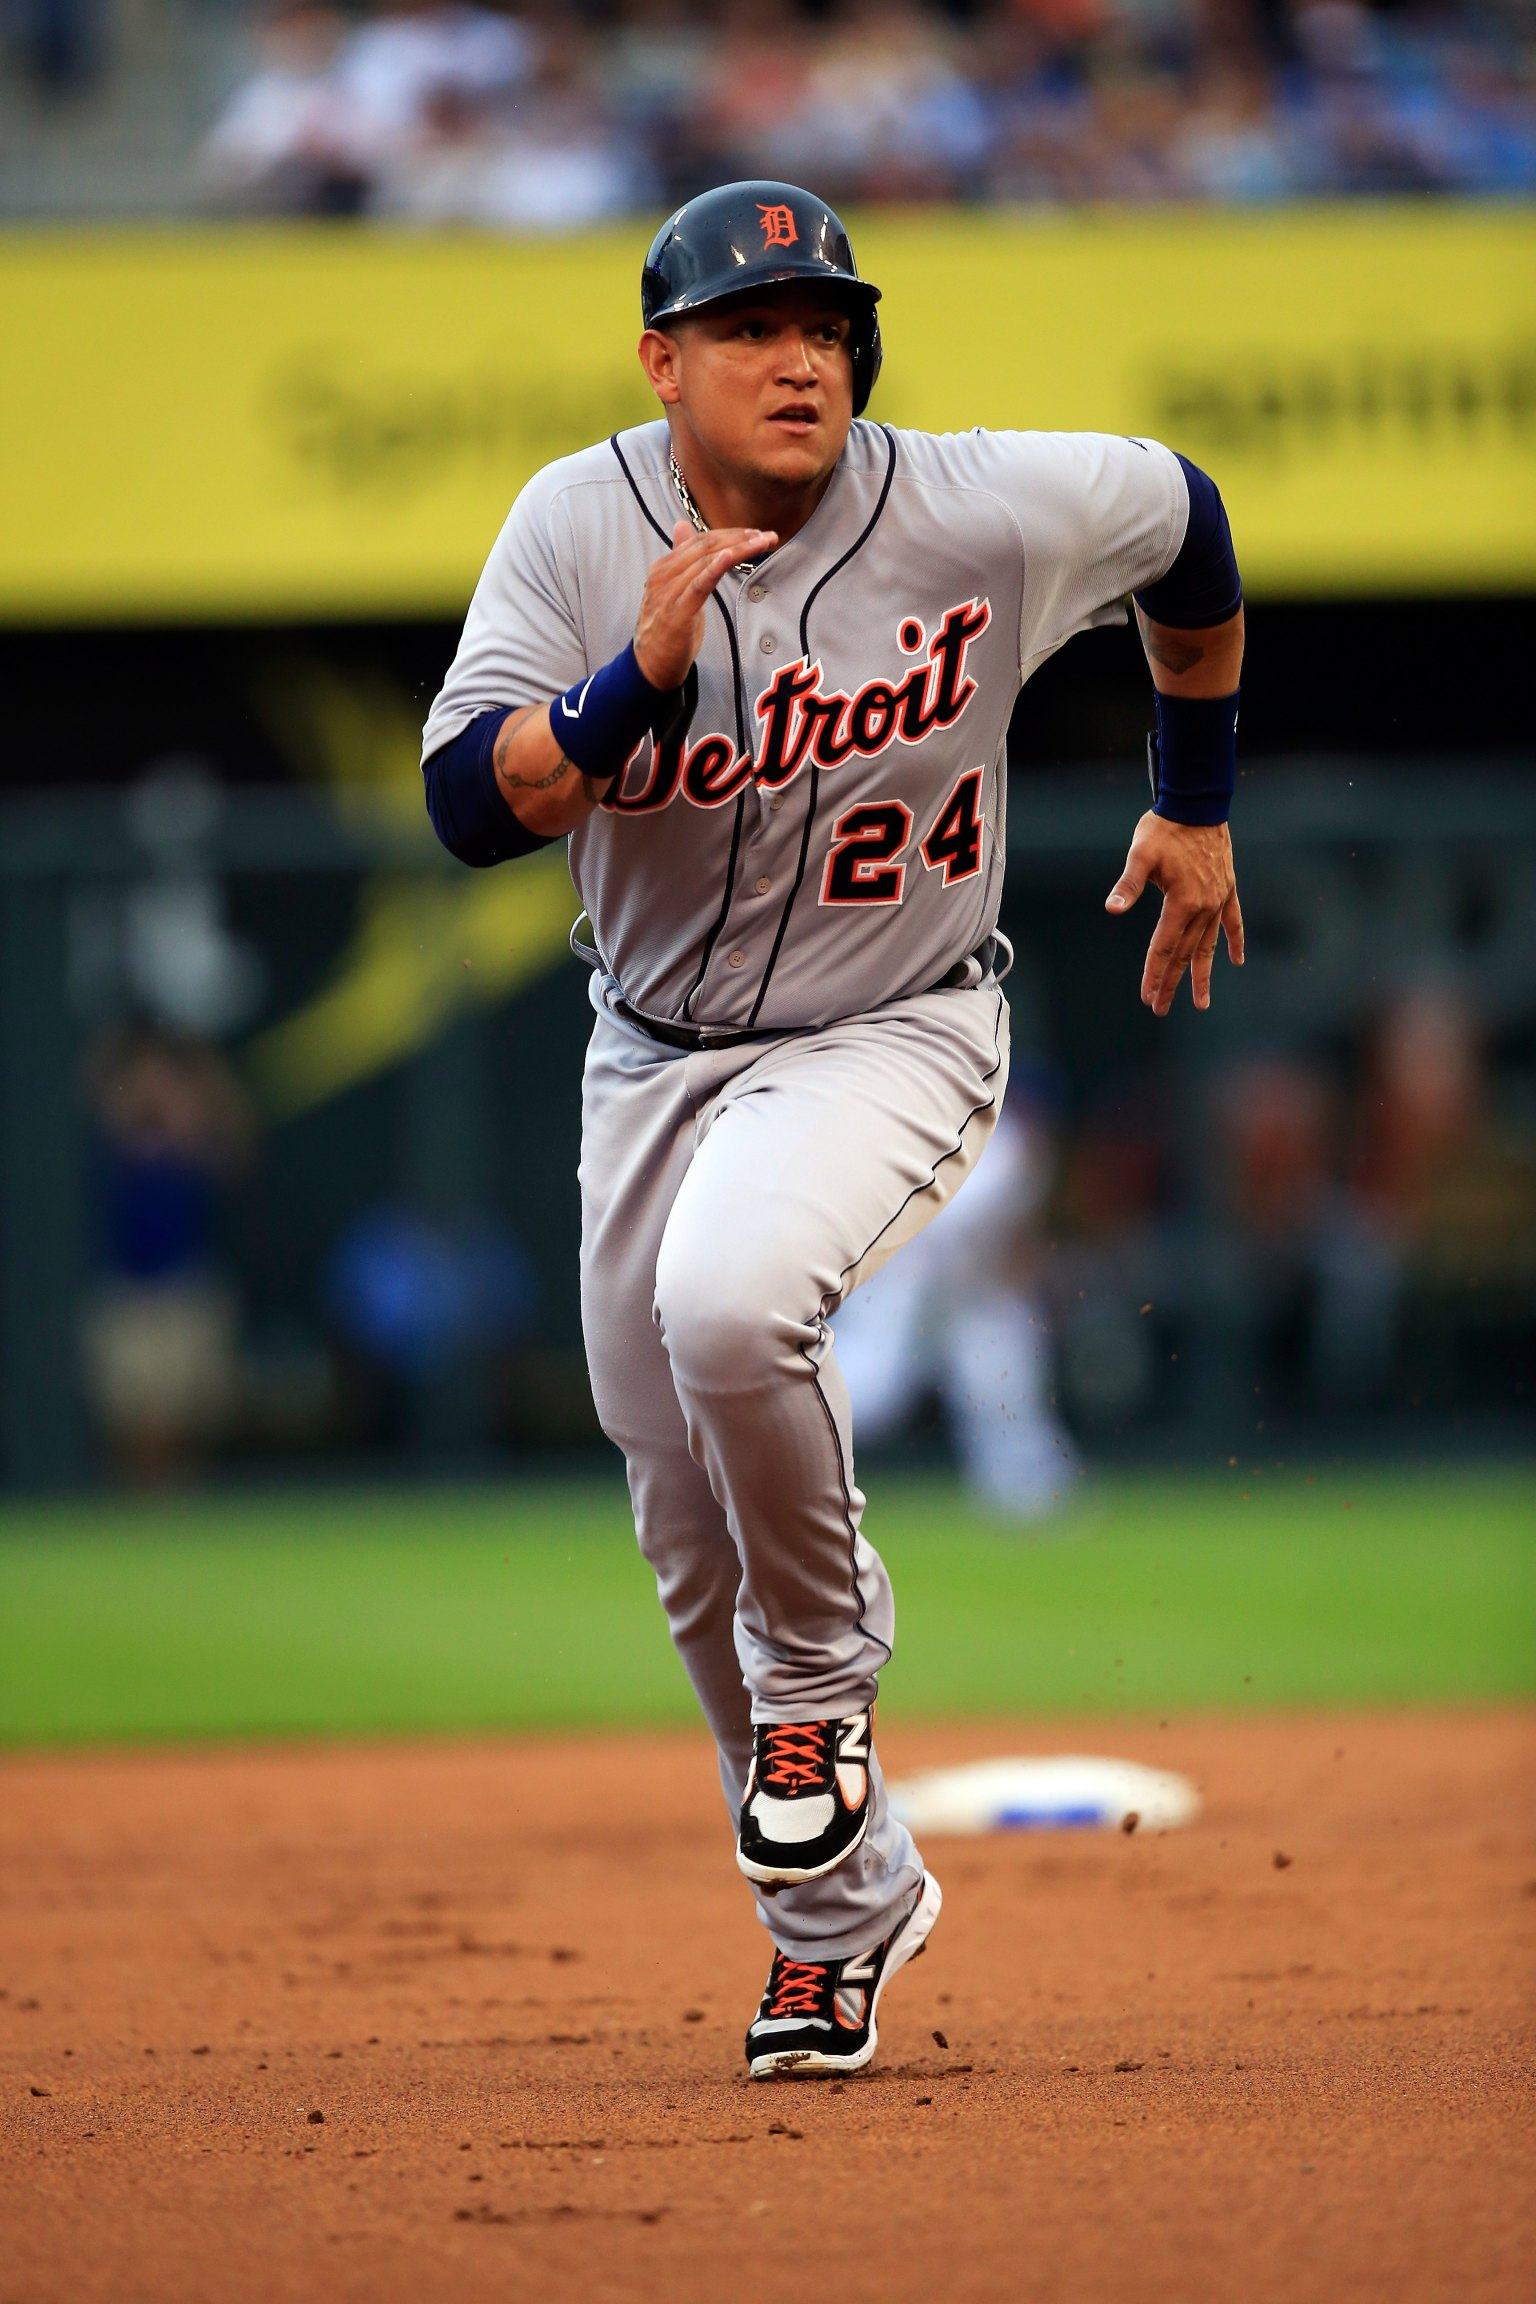 1000+ images about Miguel Cabrera on Pinterest | Miguel ...